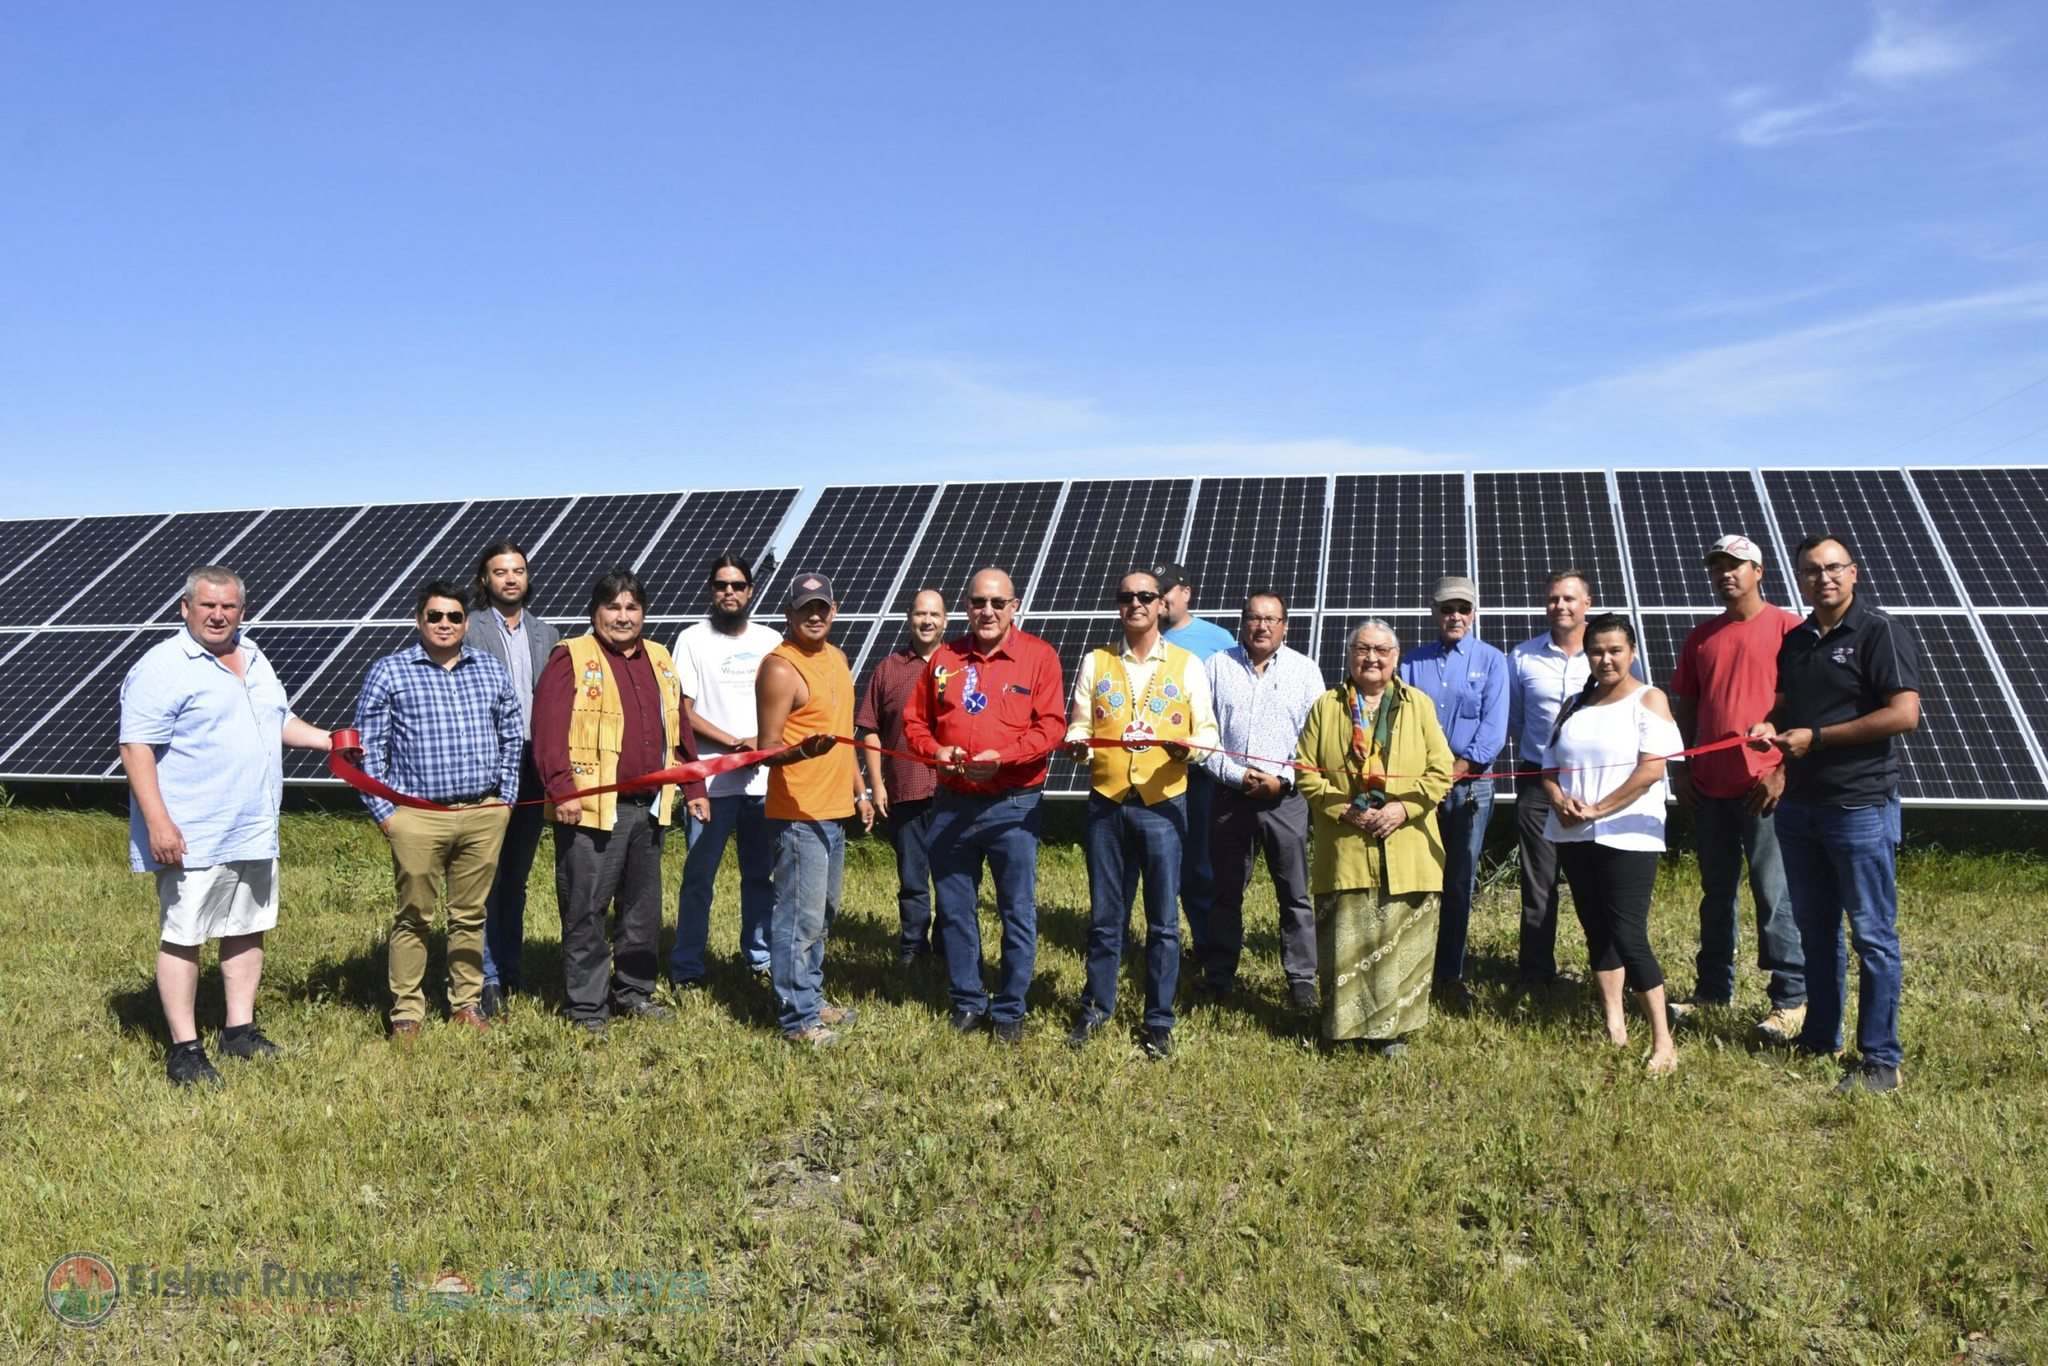 SUPPLIED</p><p>This summer, Fisher River Cree Nation unveiled the largest solar farm in the province, with excess energy sold back into Manitoba Hydro's grid. In the centre are Chief David Crate (in red) with AMC Grand Chief Arlen Dumas.</p></p>